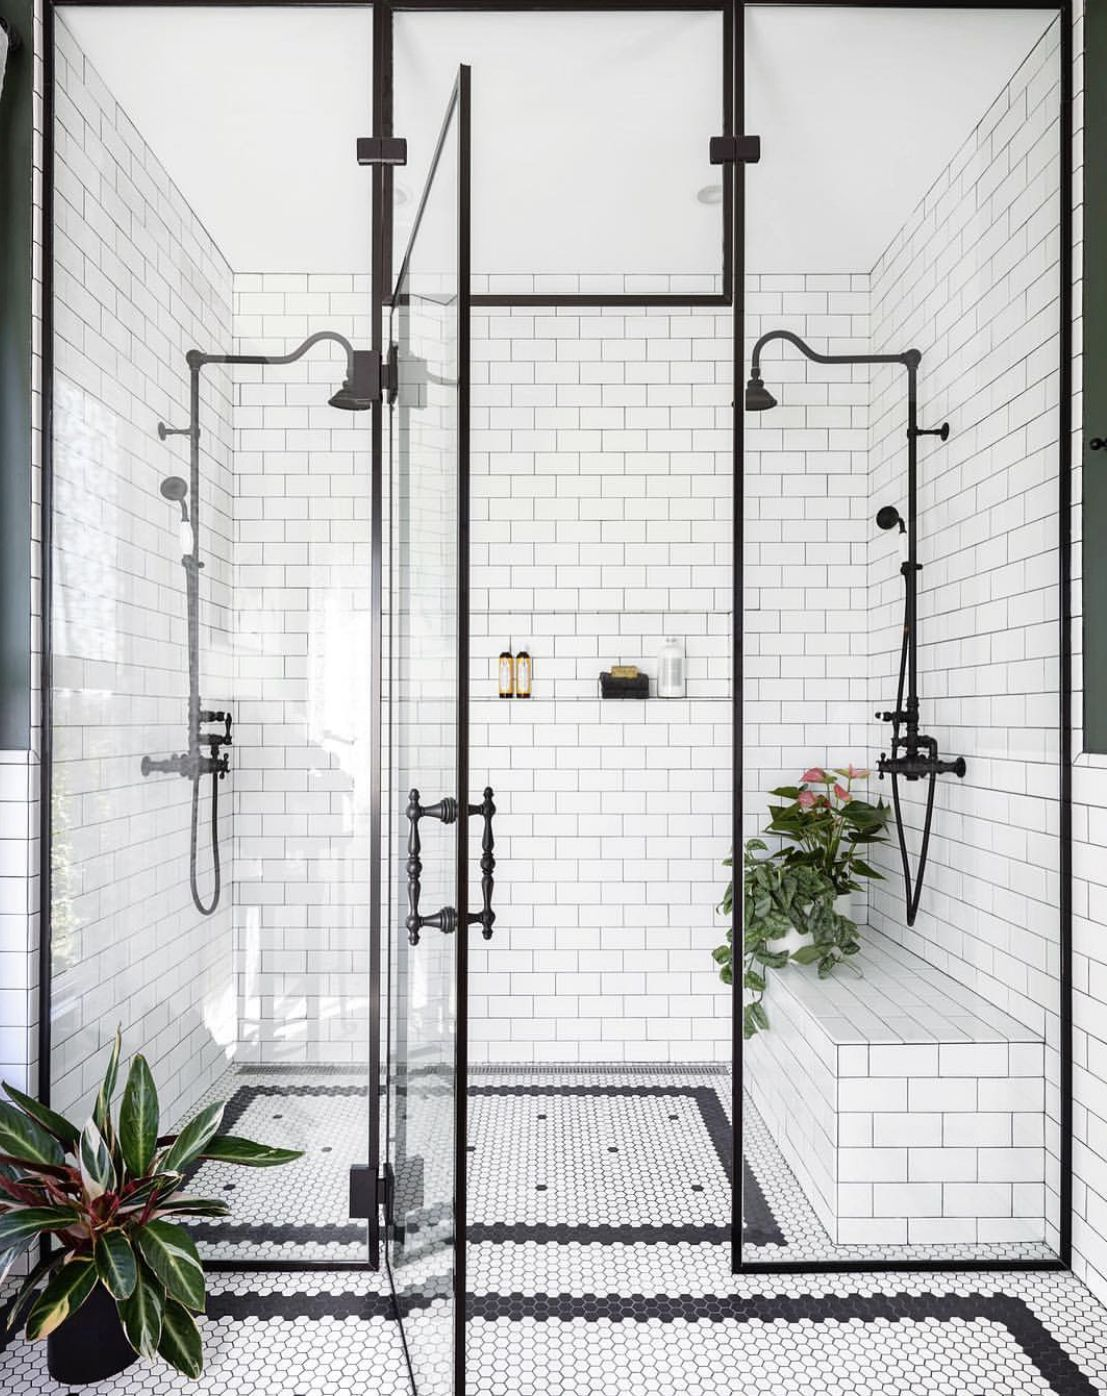 Photo of #glassshowerdoors #bathroom #blackandwhitebathroom #industrialdesign